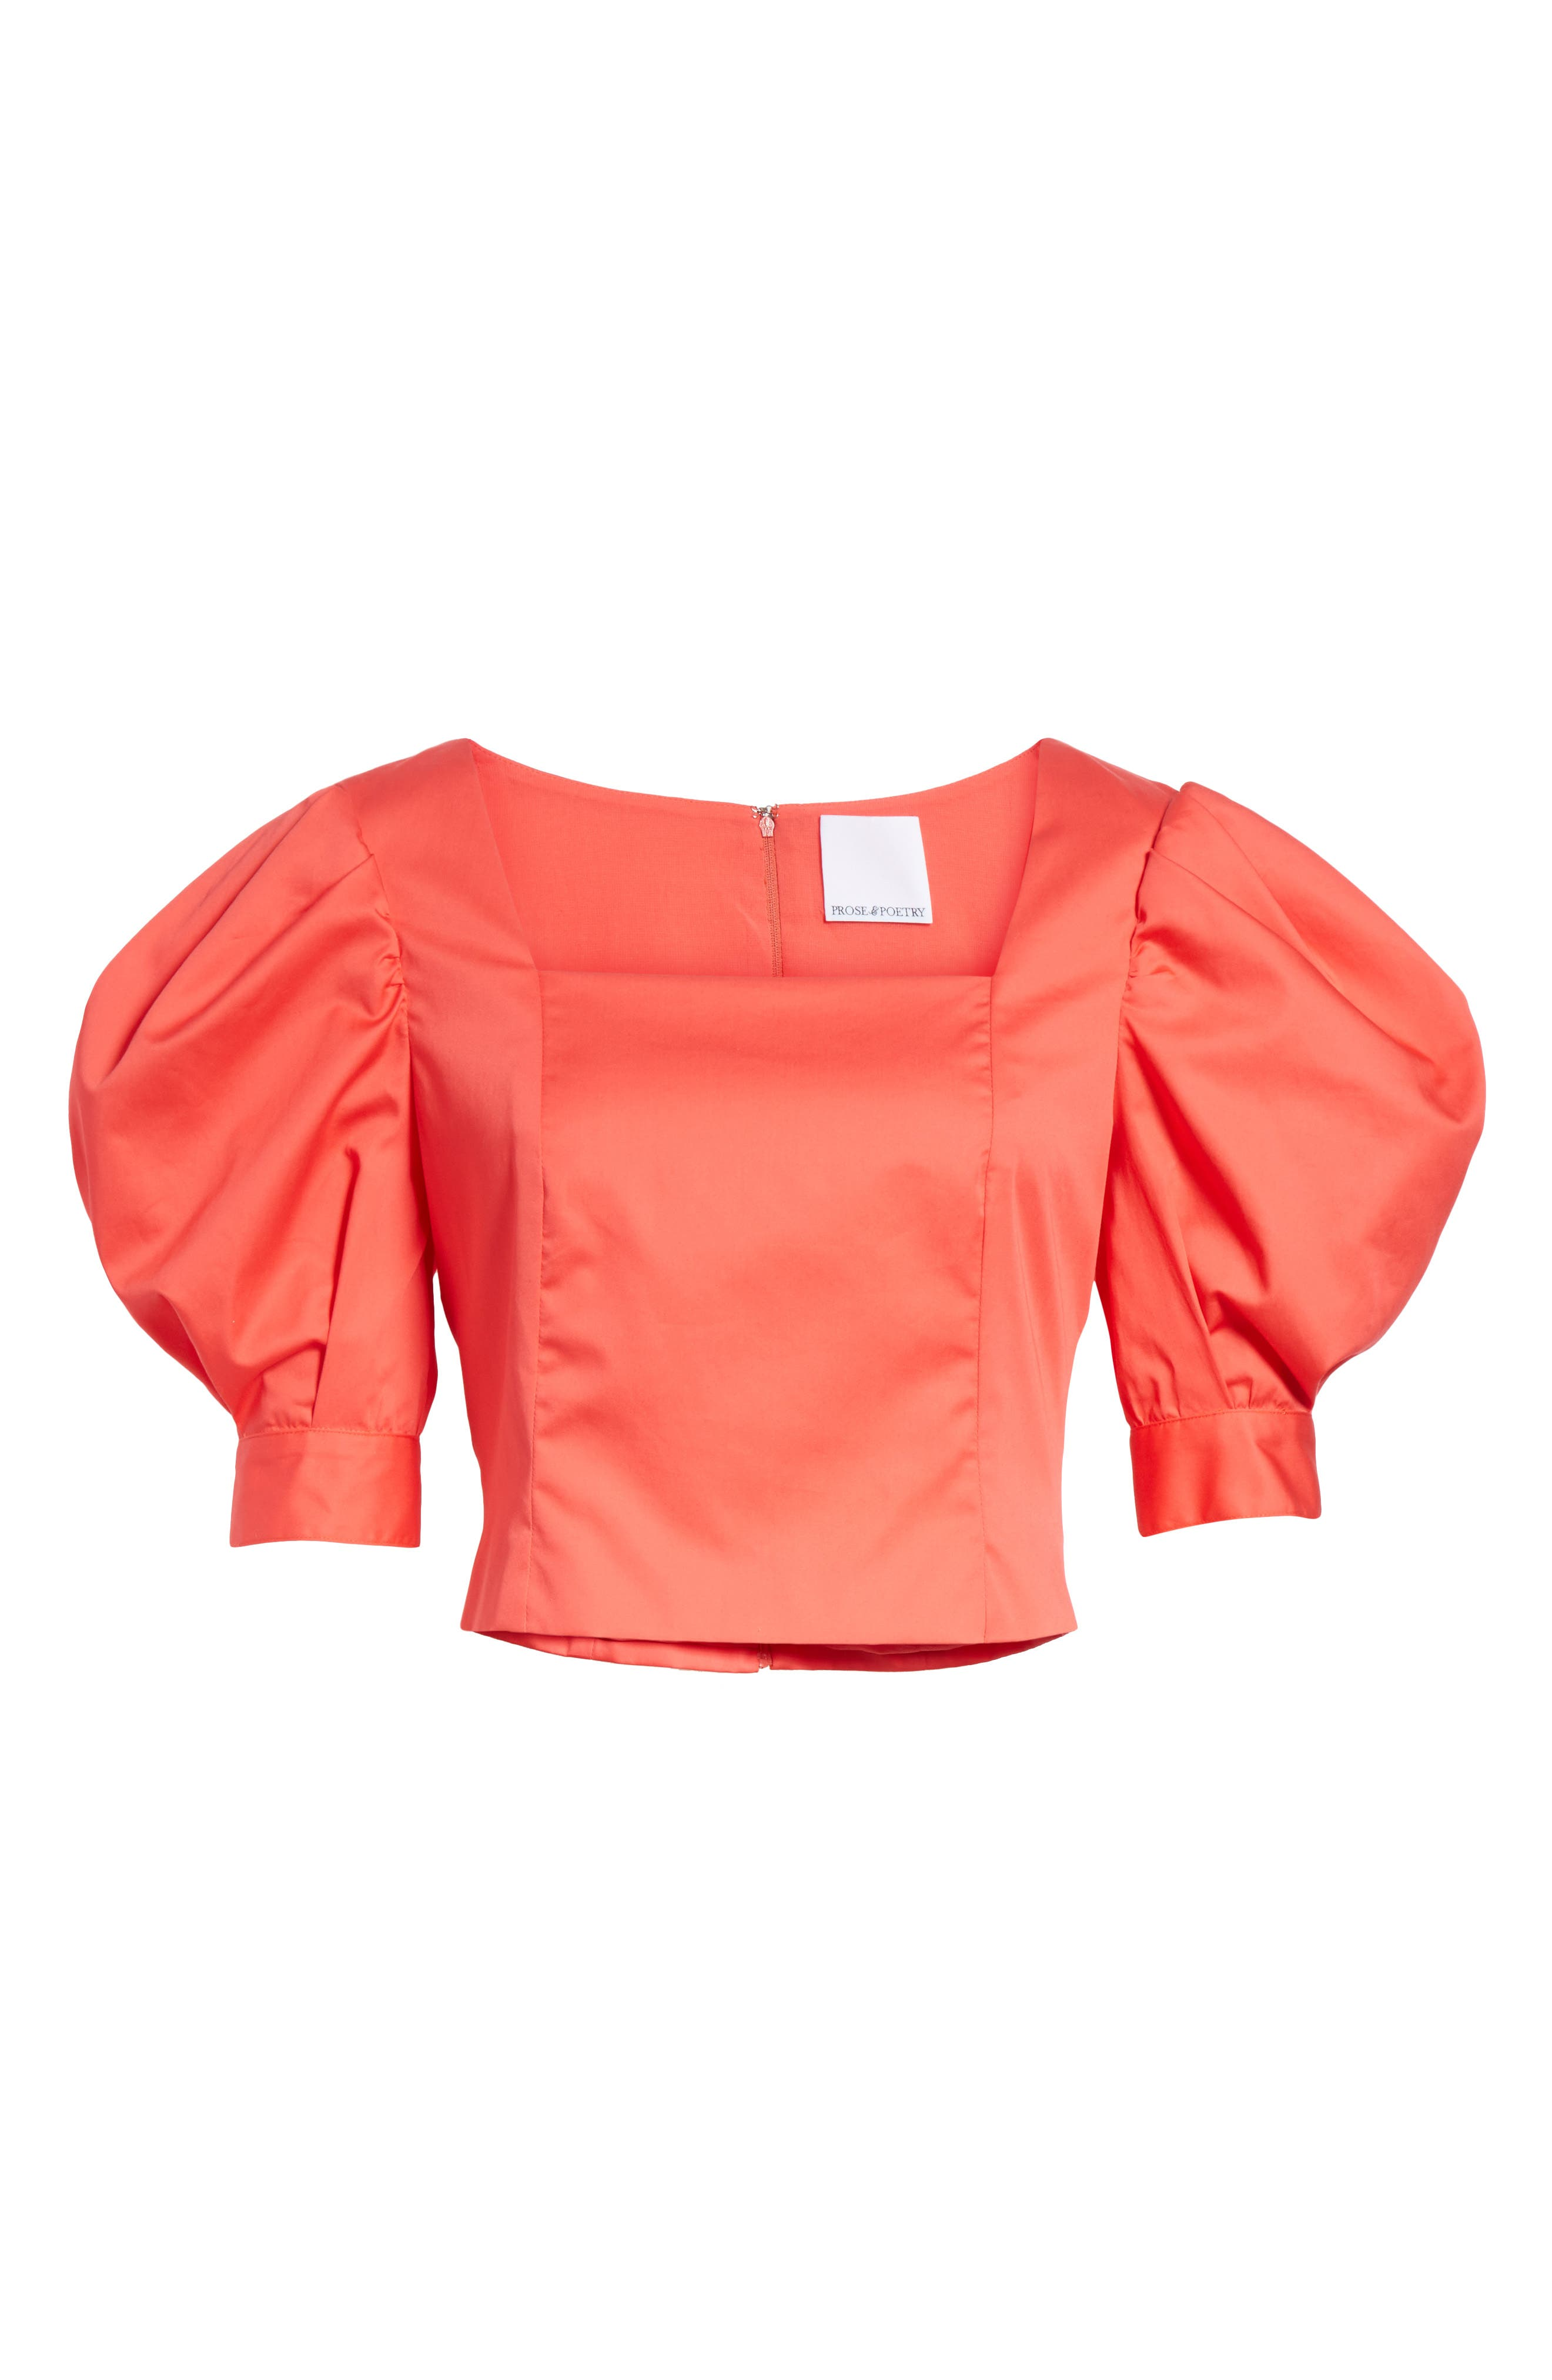 Prose & Poetry Claudia Puff Sleeve Top,                             Alternate thumbnail 6, color,                             Watermelon